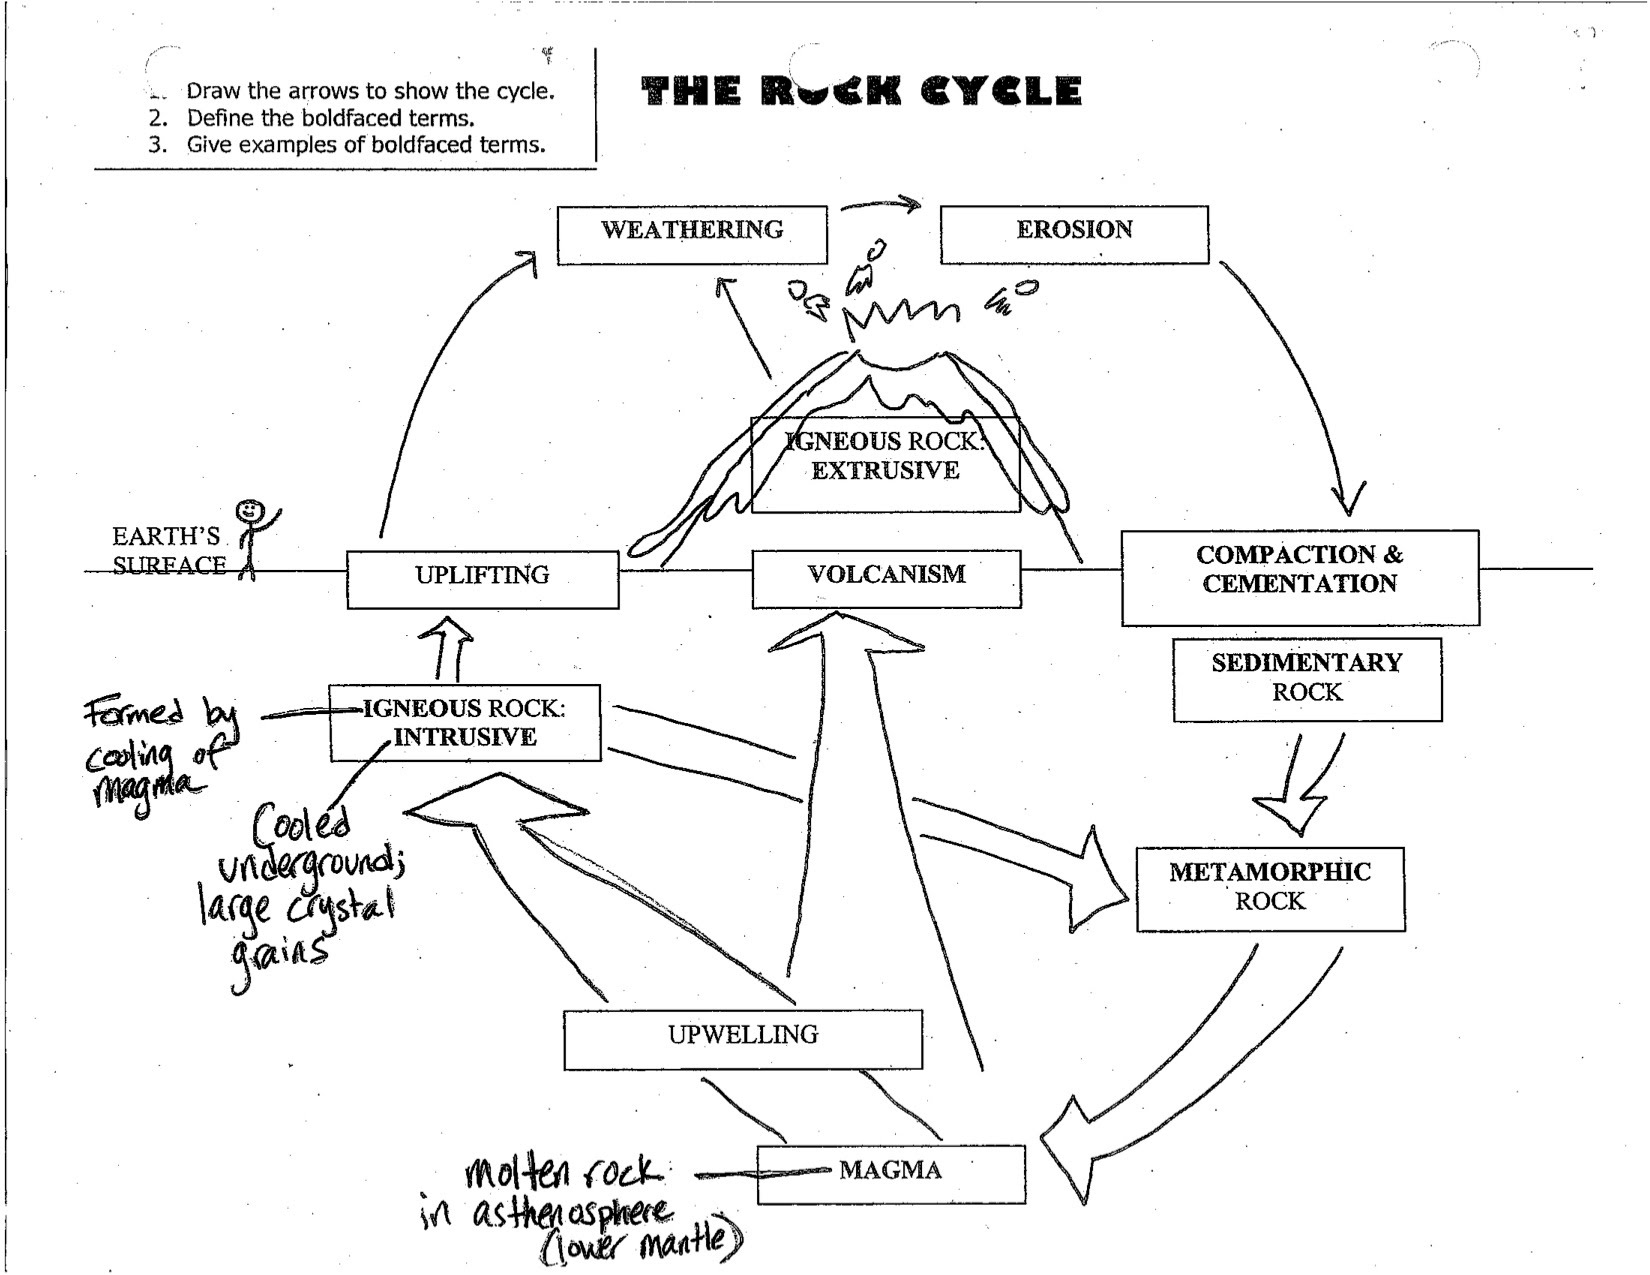 Rock Cycle Diagram Worksheet Answers